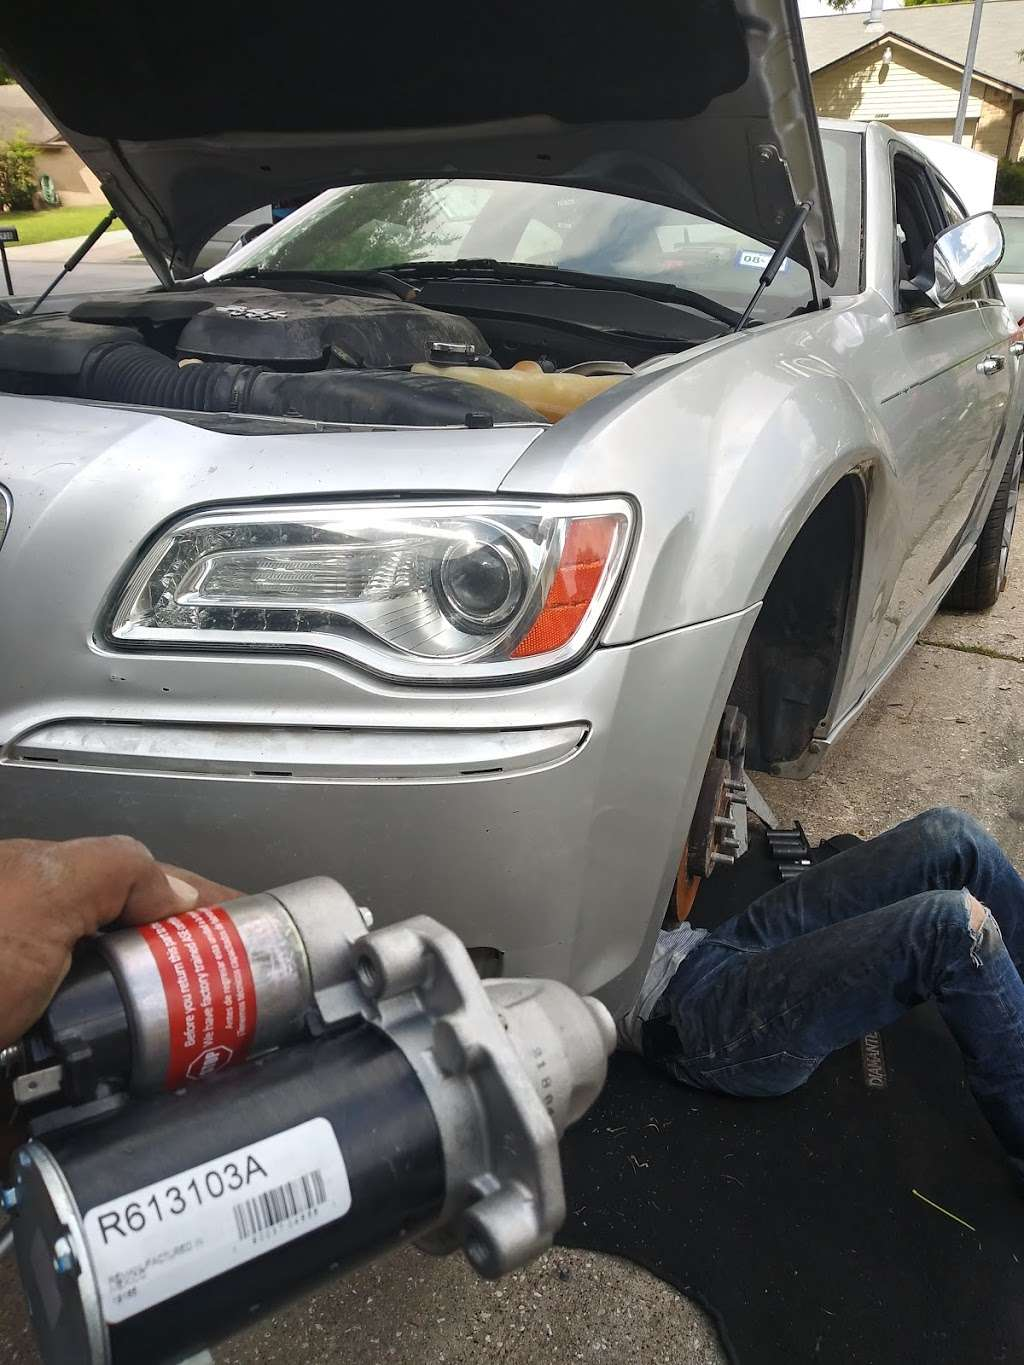 Experts Mobile Mechanic / Mecanico Electrico A Domicilio - car repair  | Photo 5 of 7 | Address: 4044 East Fwy, Baytown, TX 77521, USA | Phone: (832) 808-1049